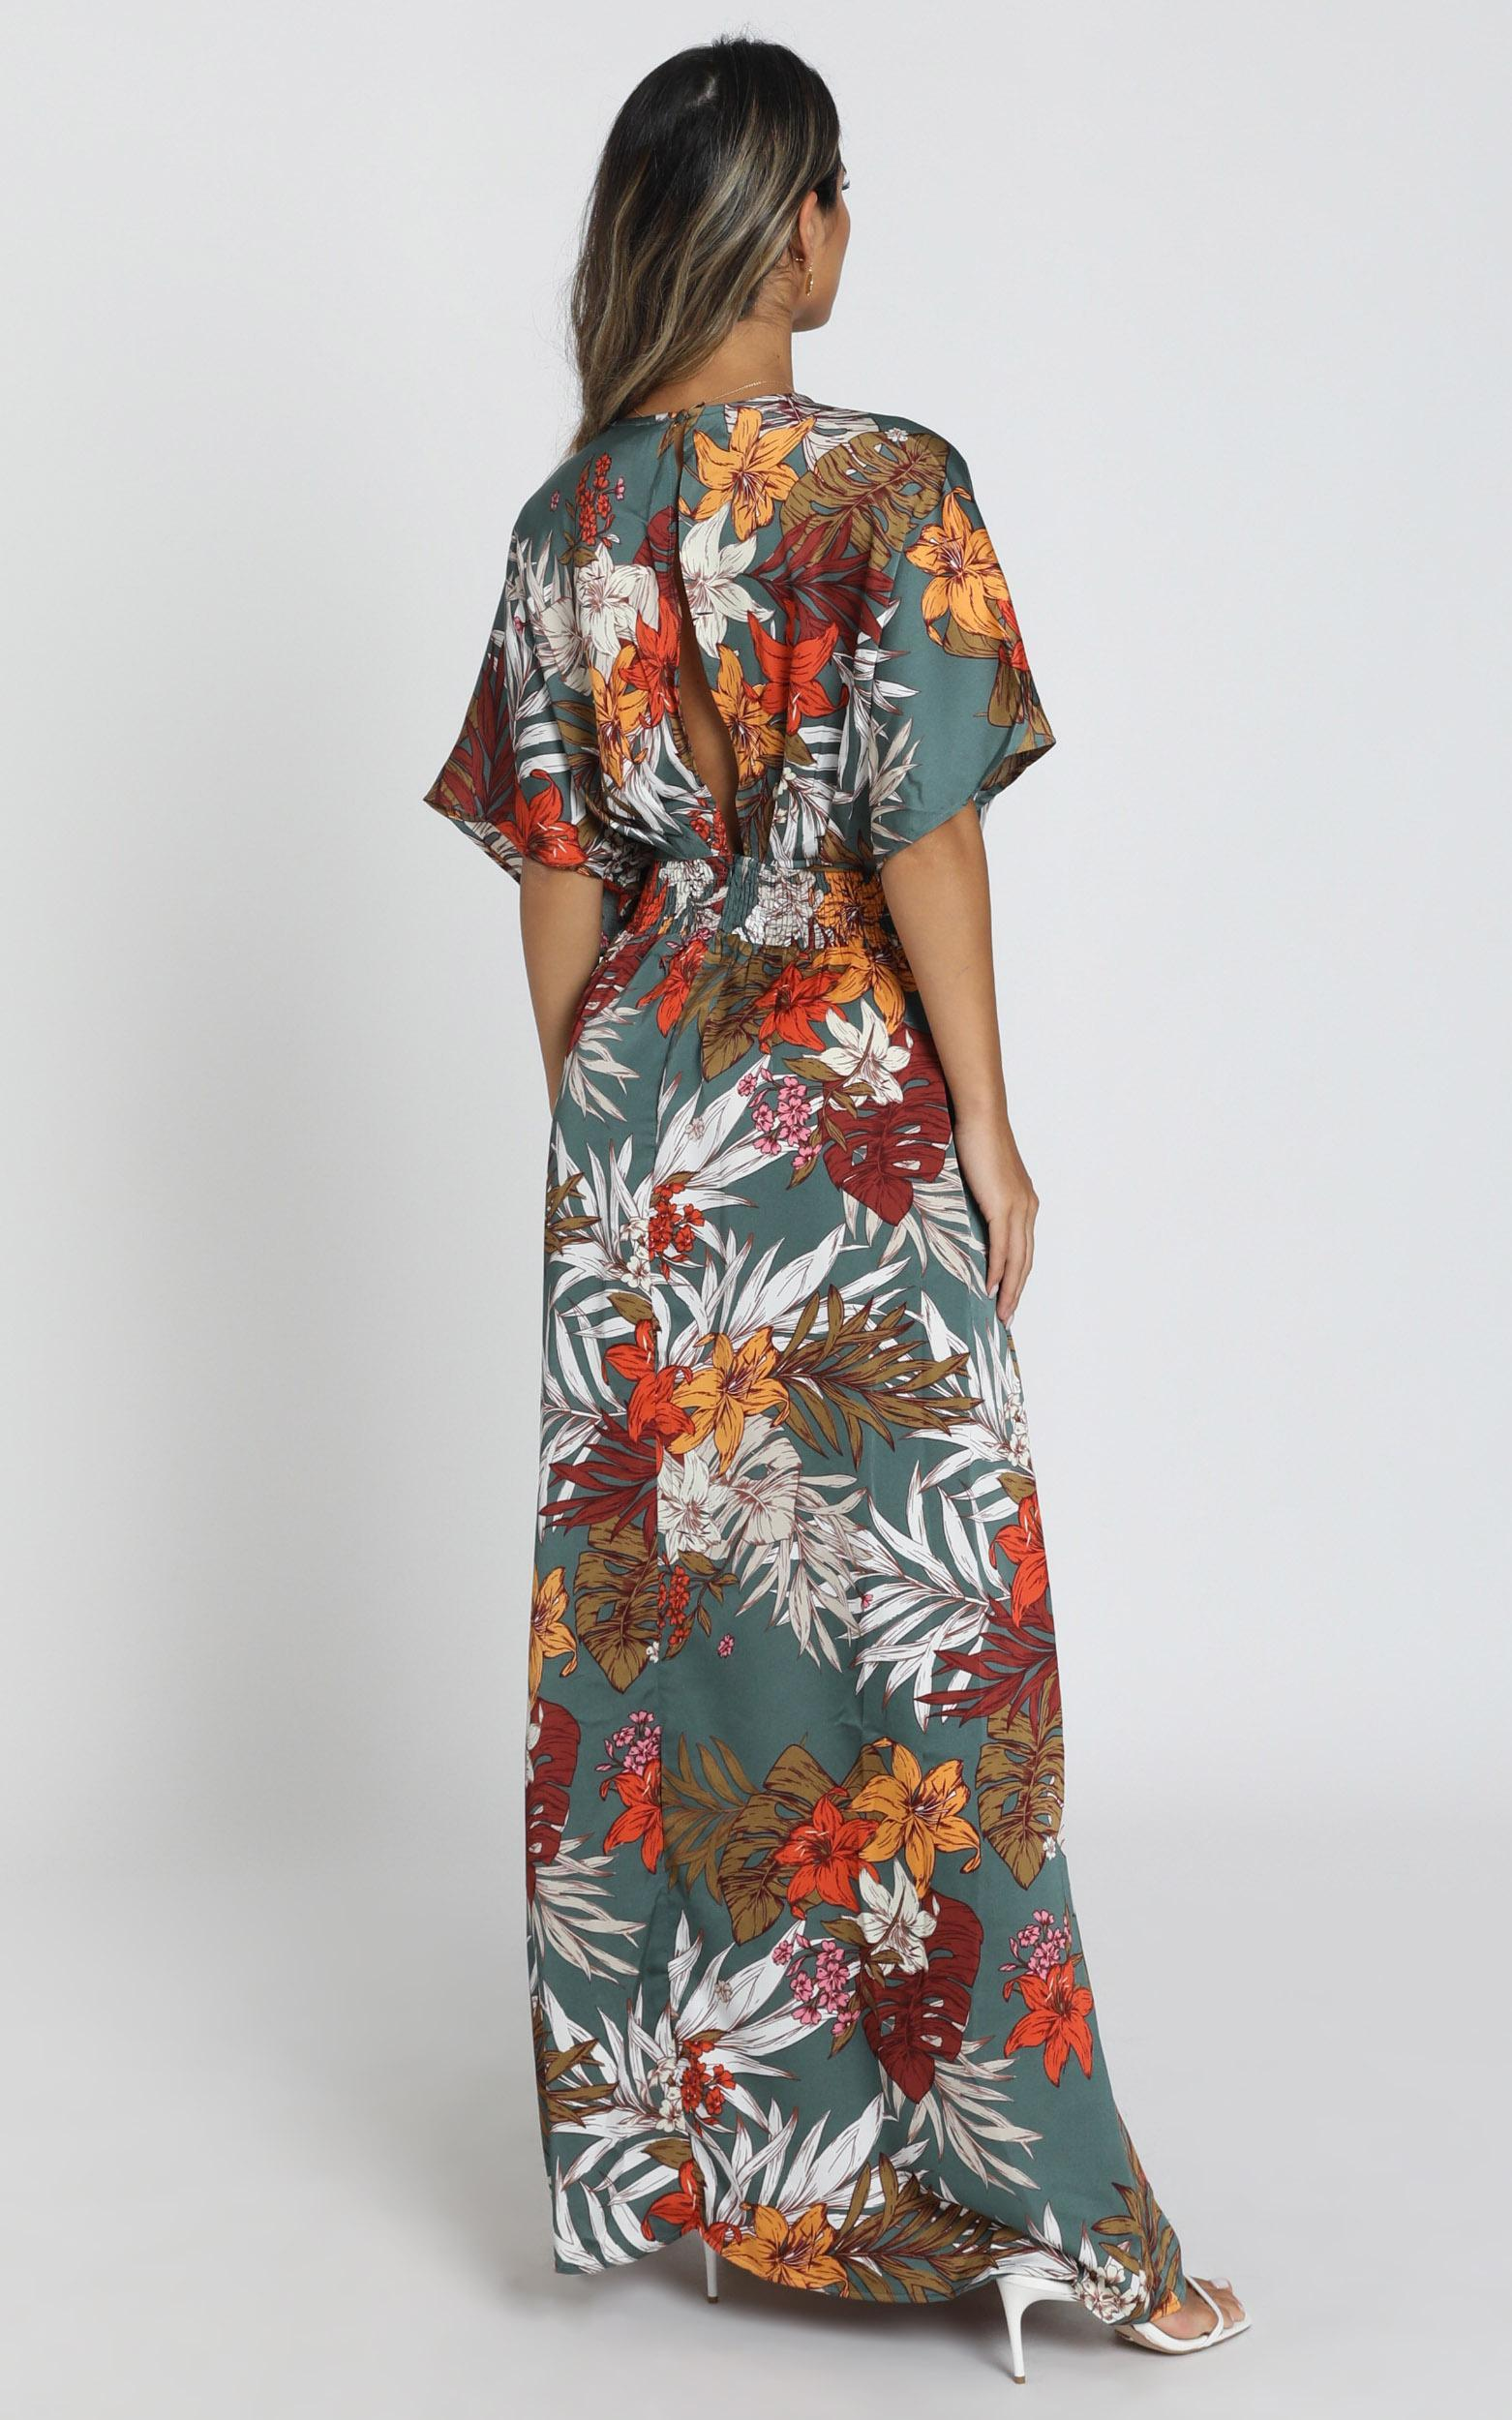 Vacay Ready Maxi Dress in teal floral satin - 20 (XXXXL), BLU1, hi-res image number null